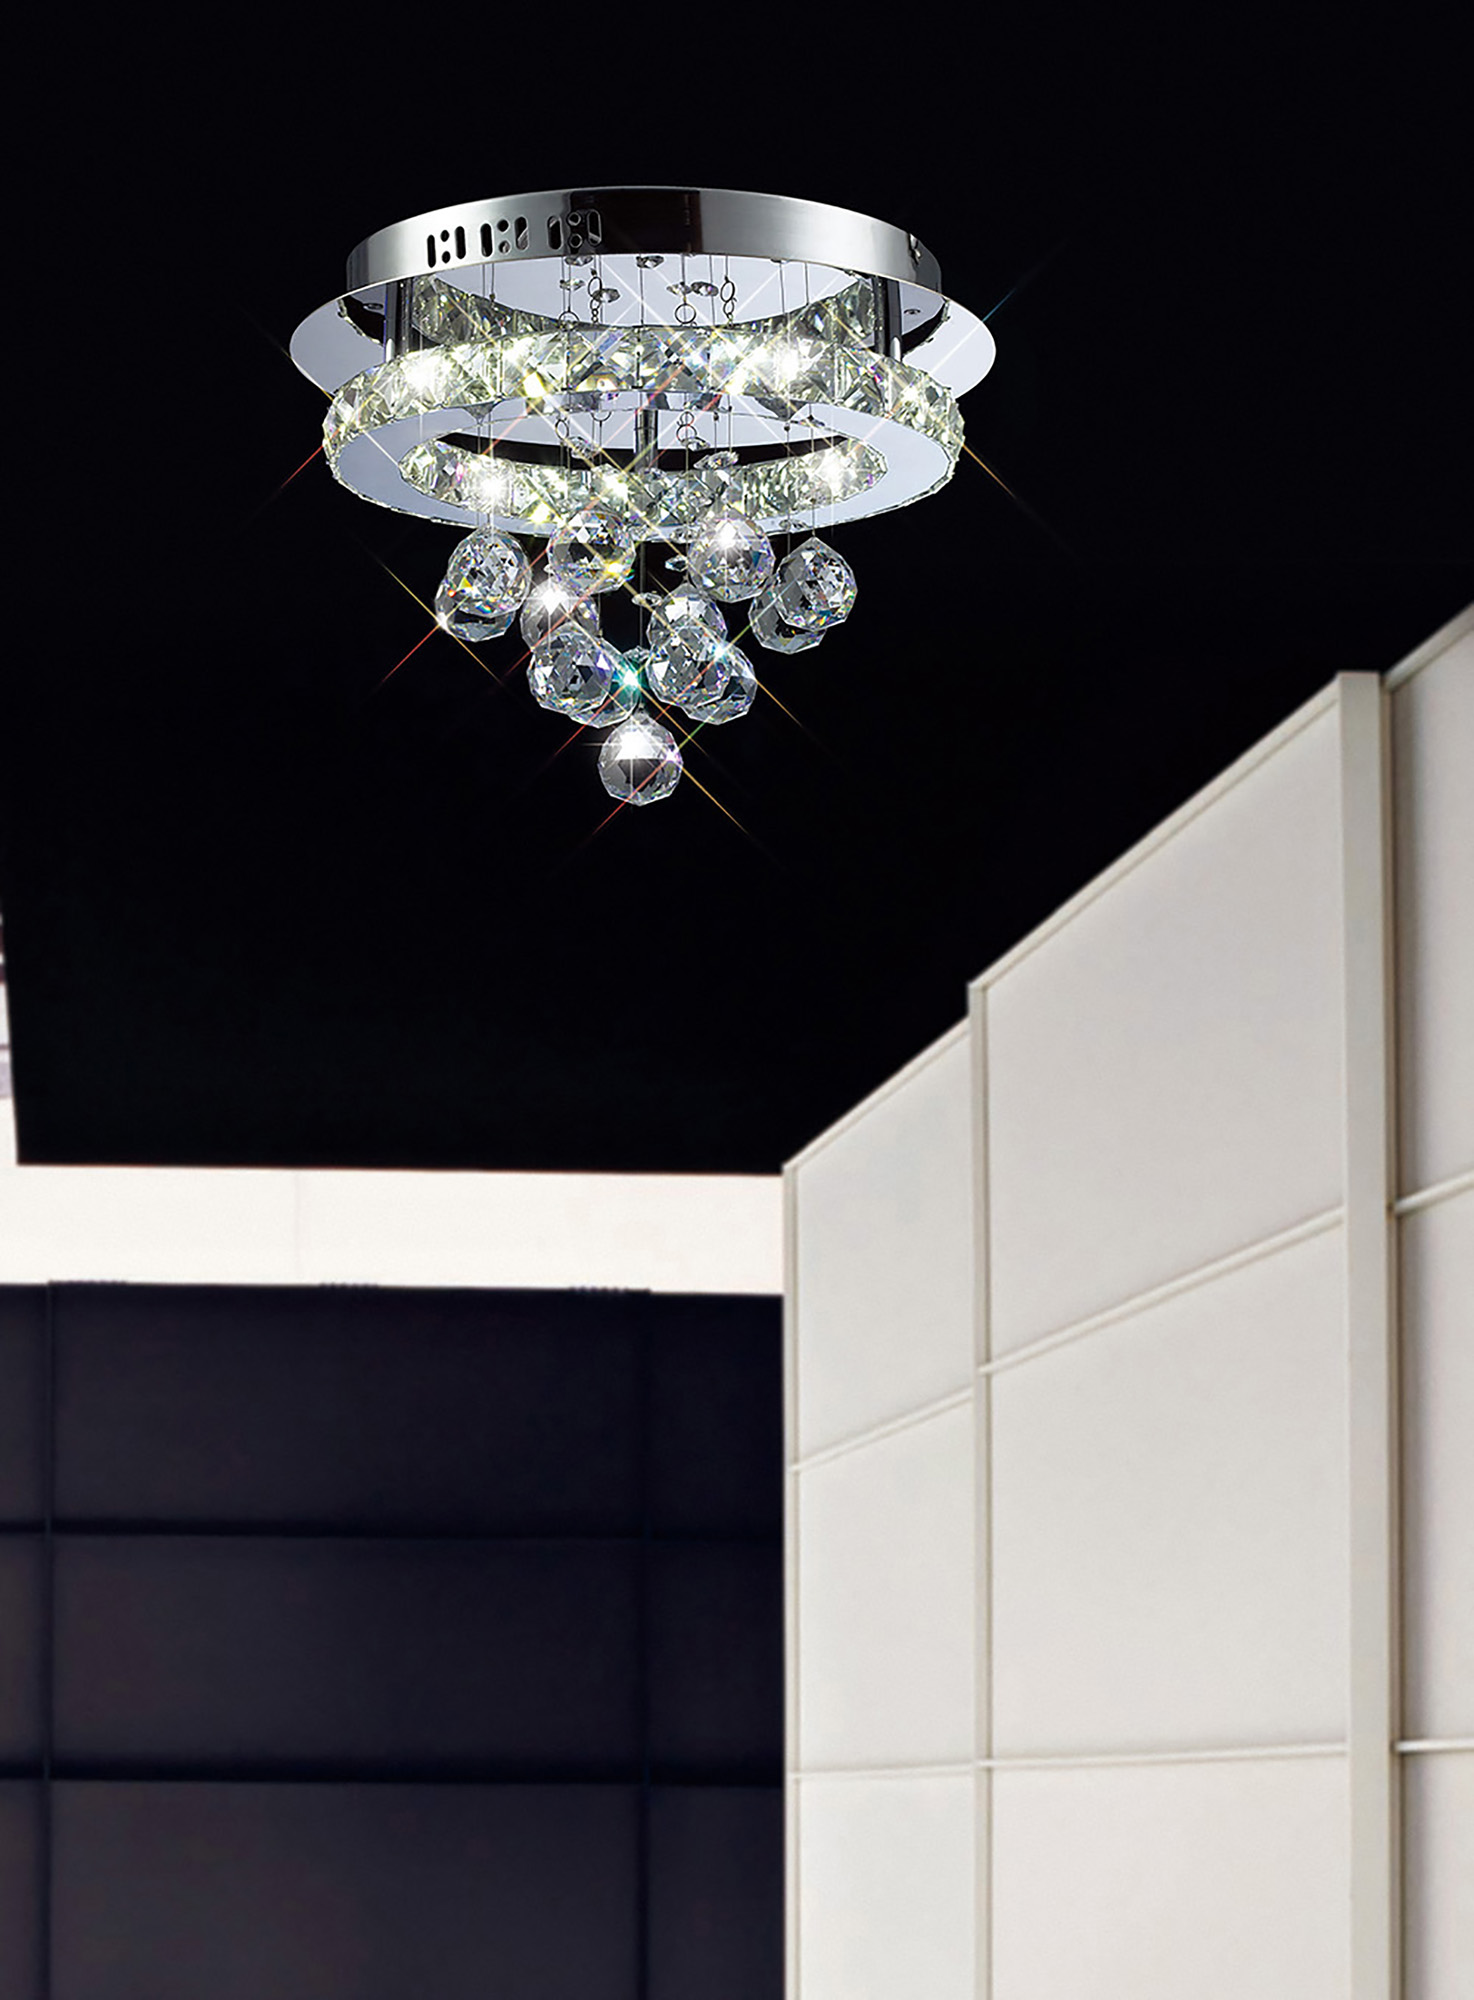 Galaxy Crystal Ceiling Lights Diyas Modern Crystal Ceiling Lights